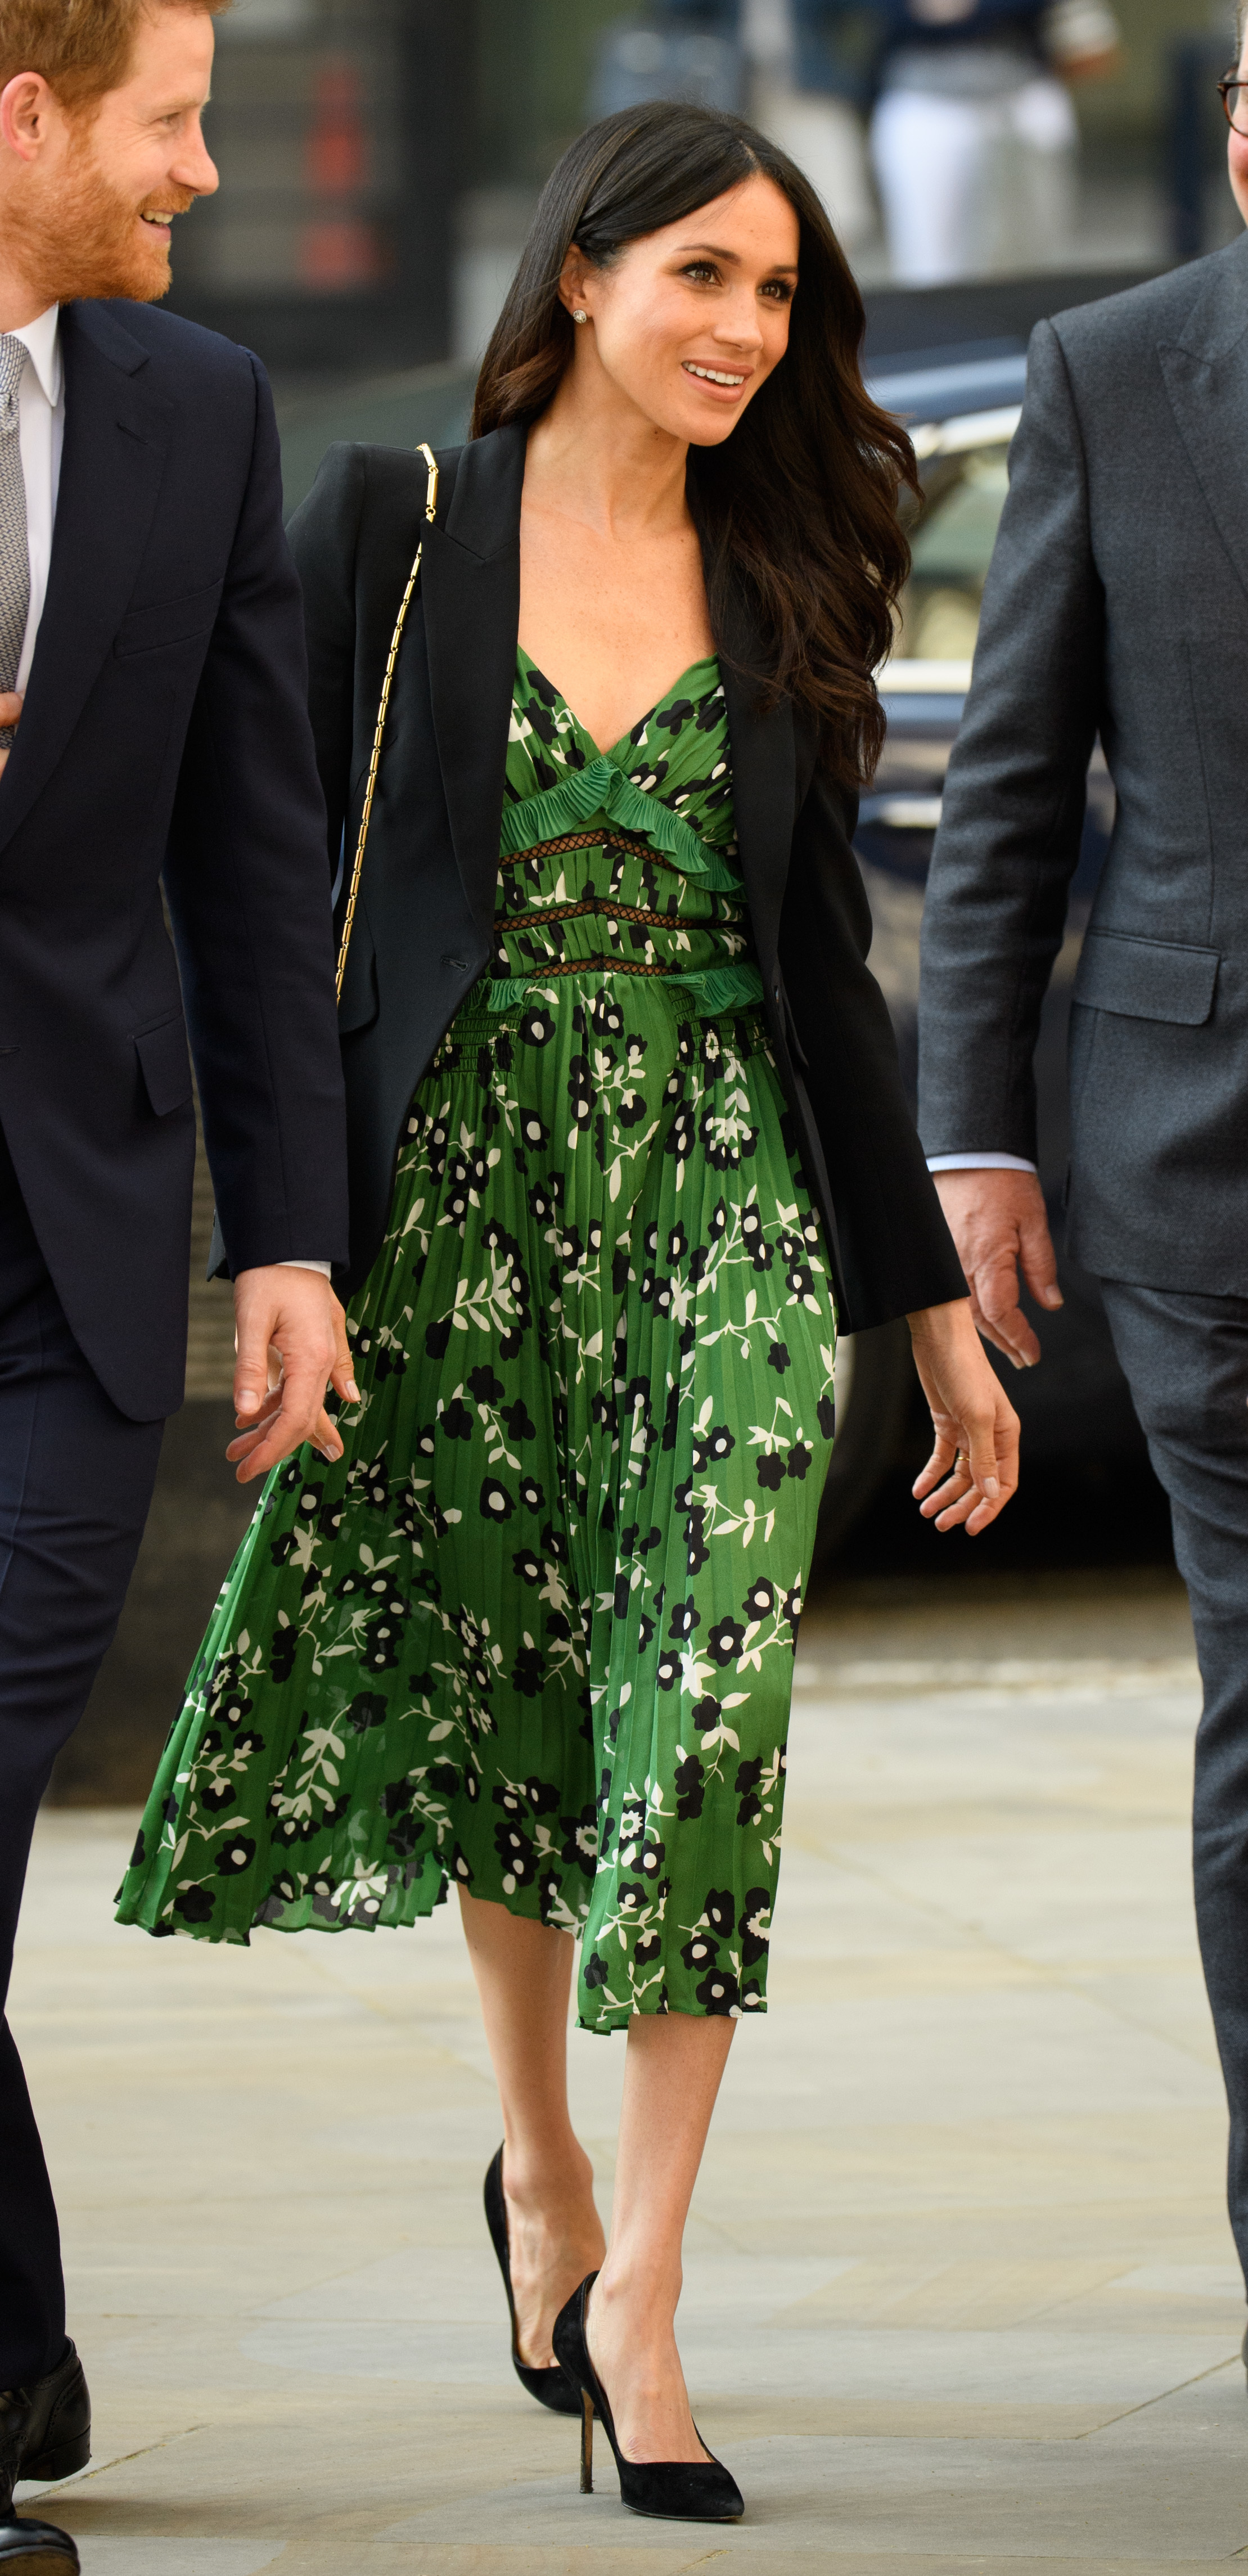 Meghan Markle and Prince Harry attend an Invictus Games Reception at Australia House in London on April 21, 2018.